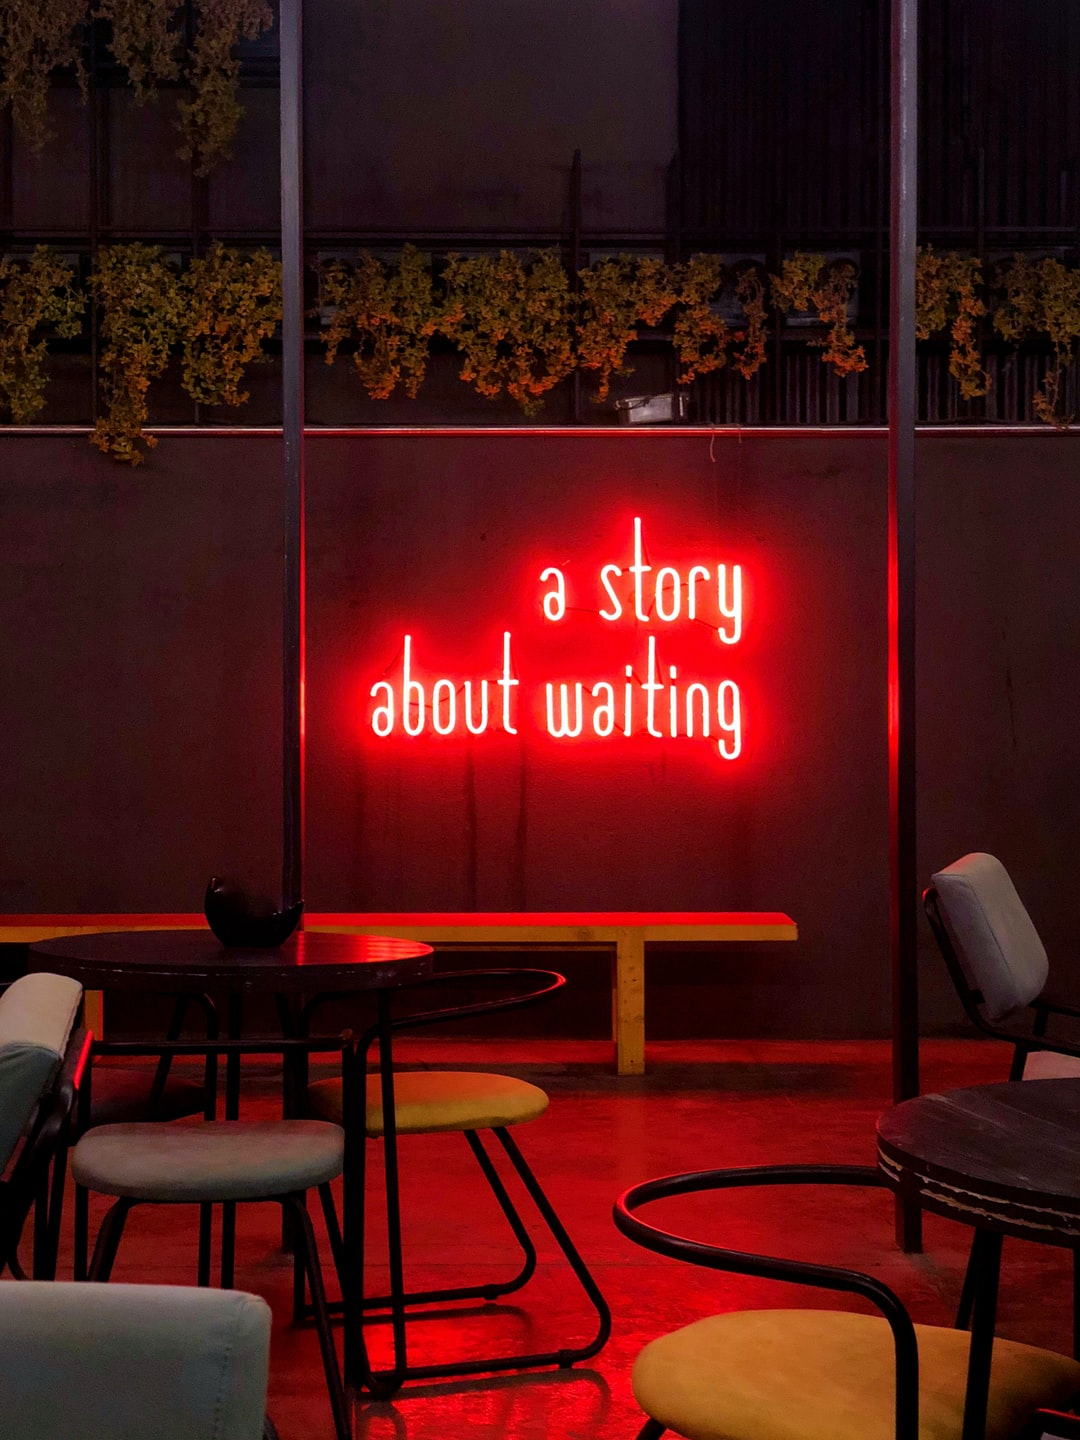 A story about waiting